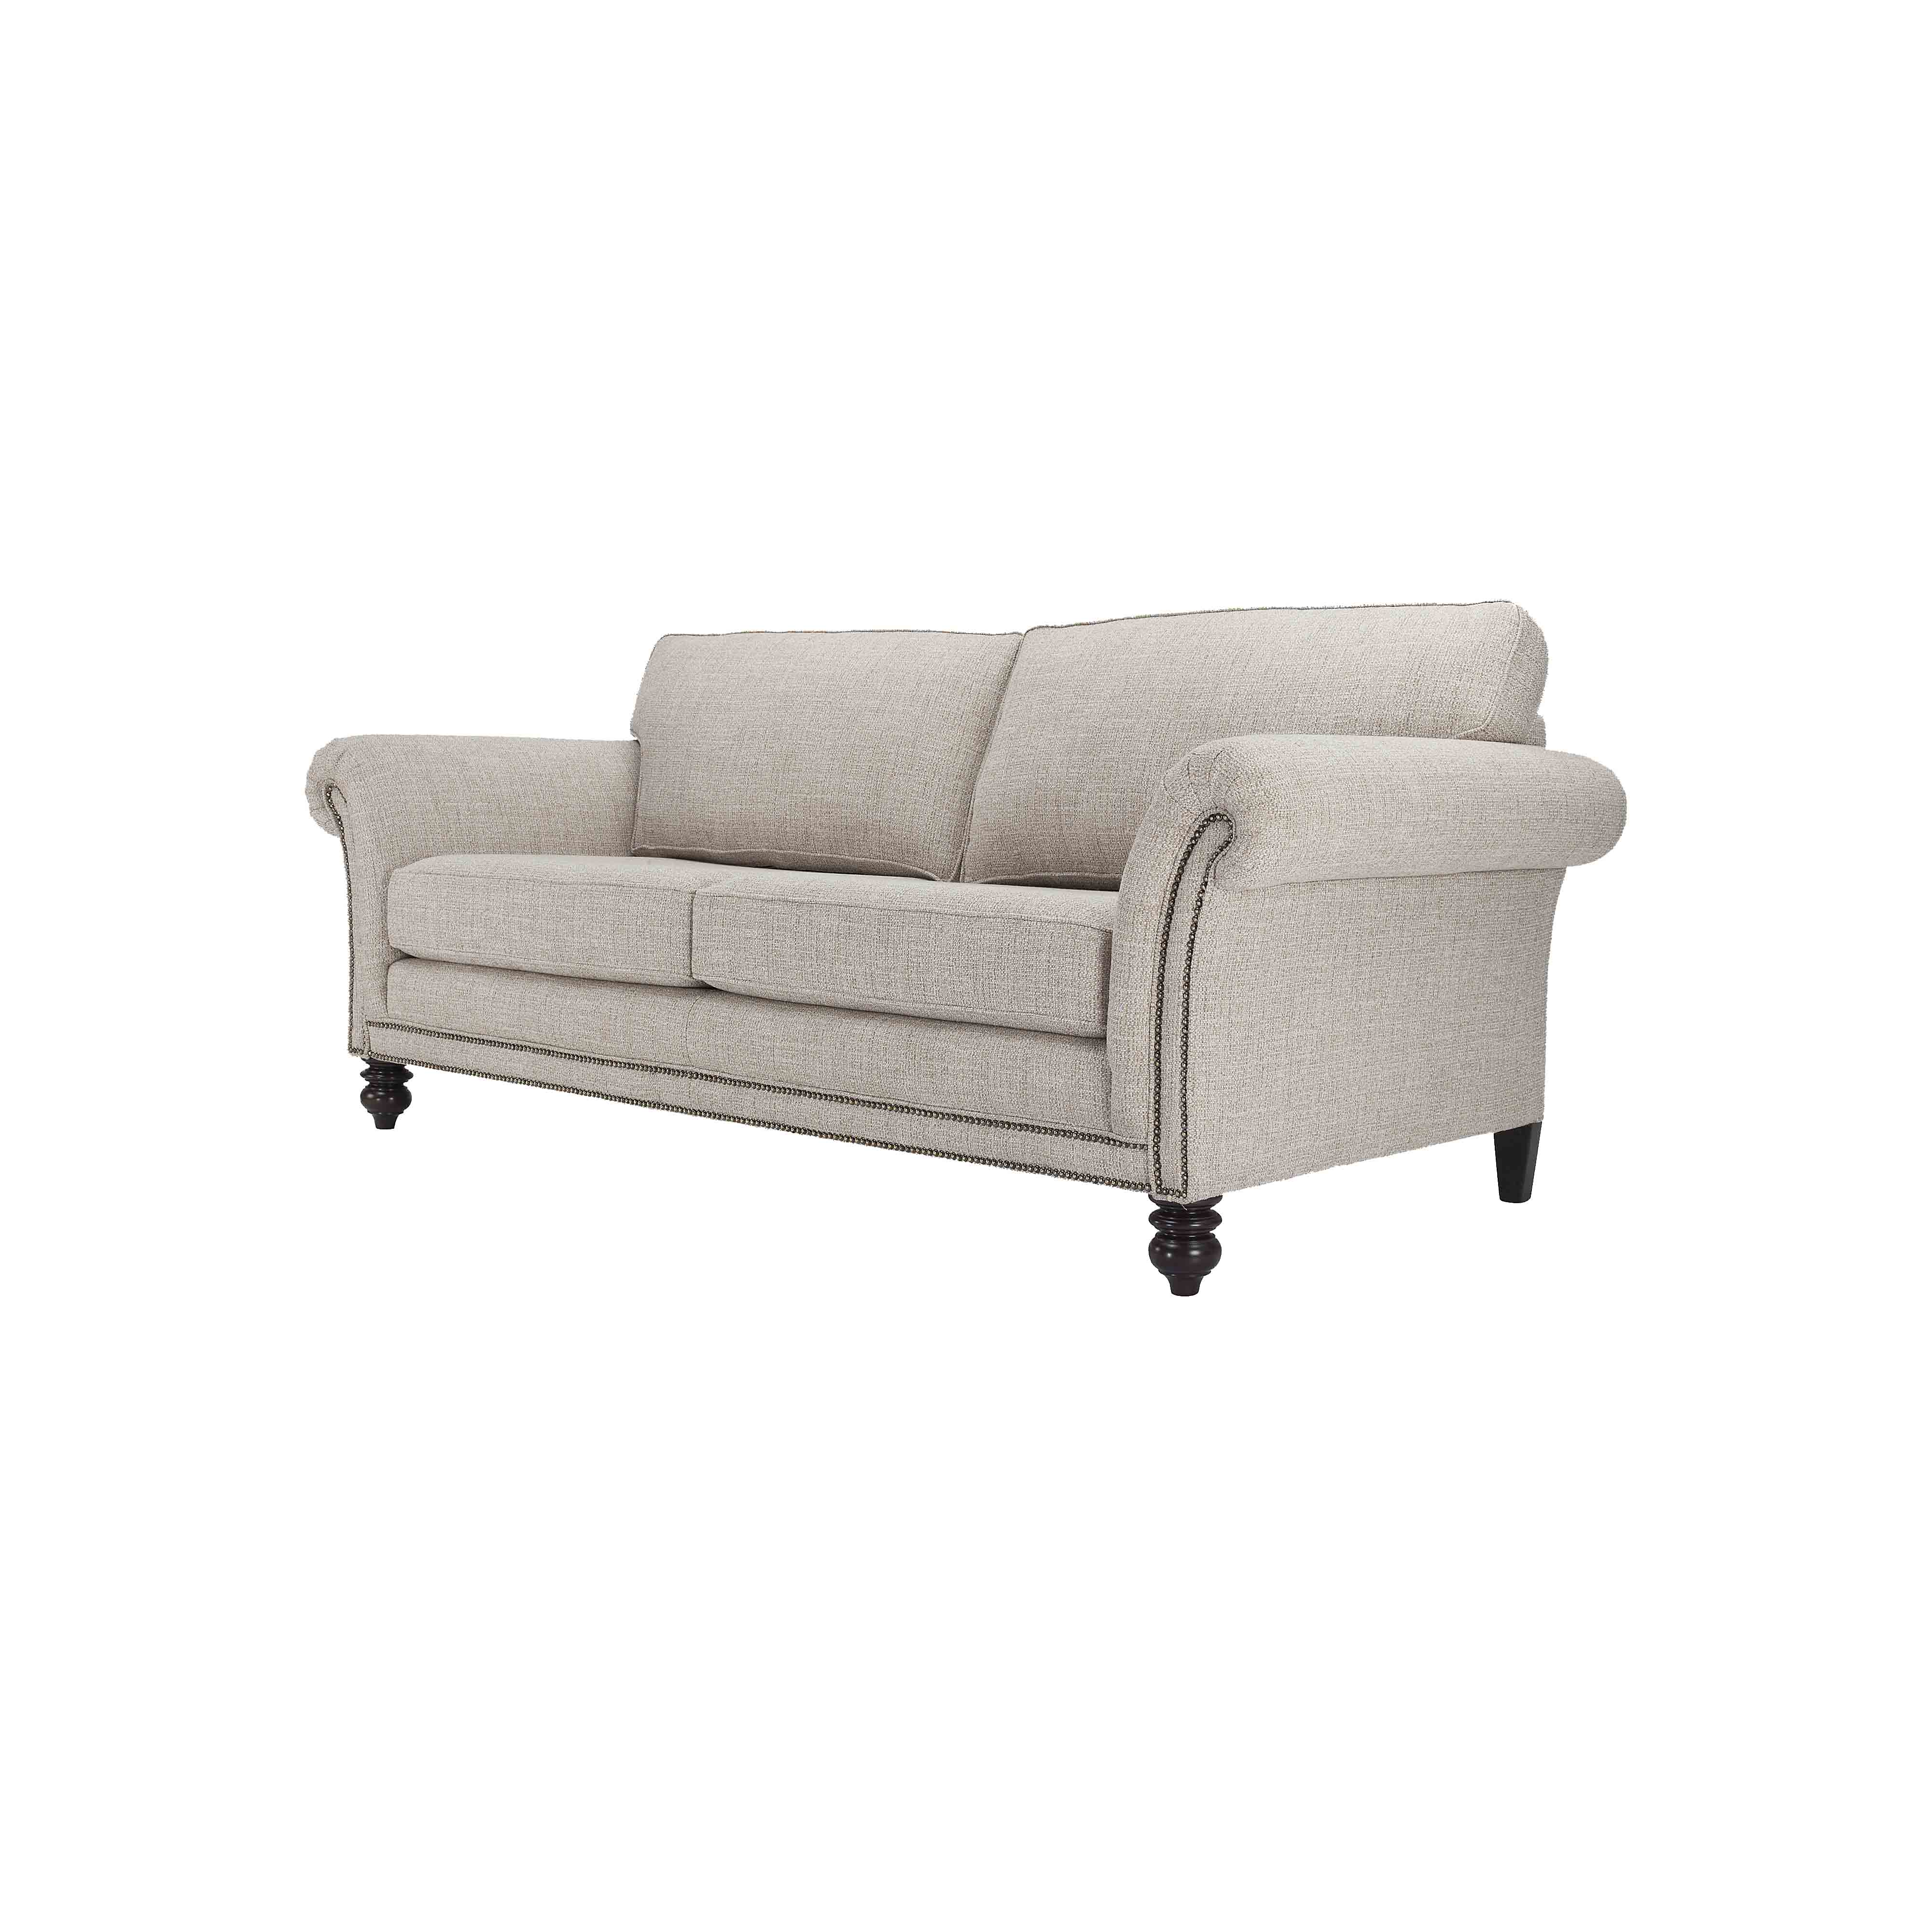 Olympia two seater